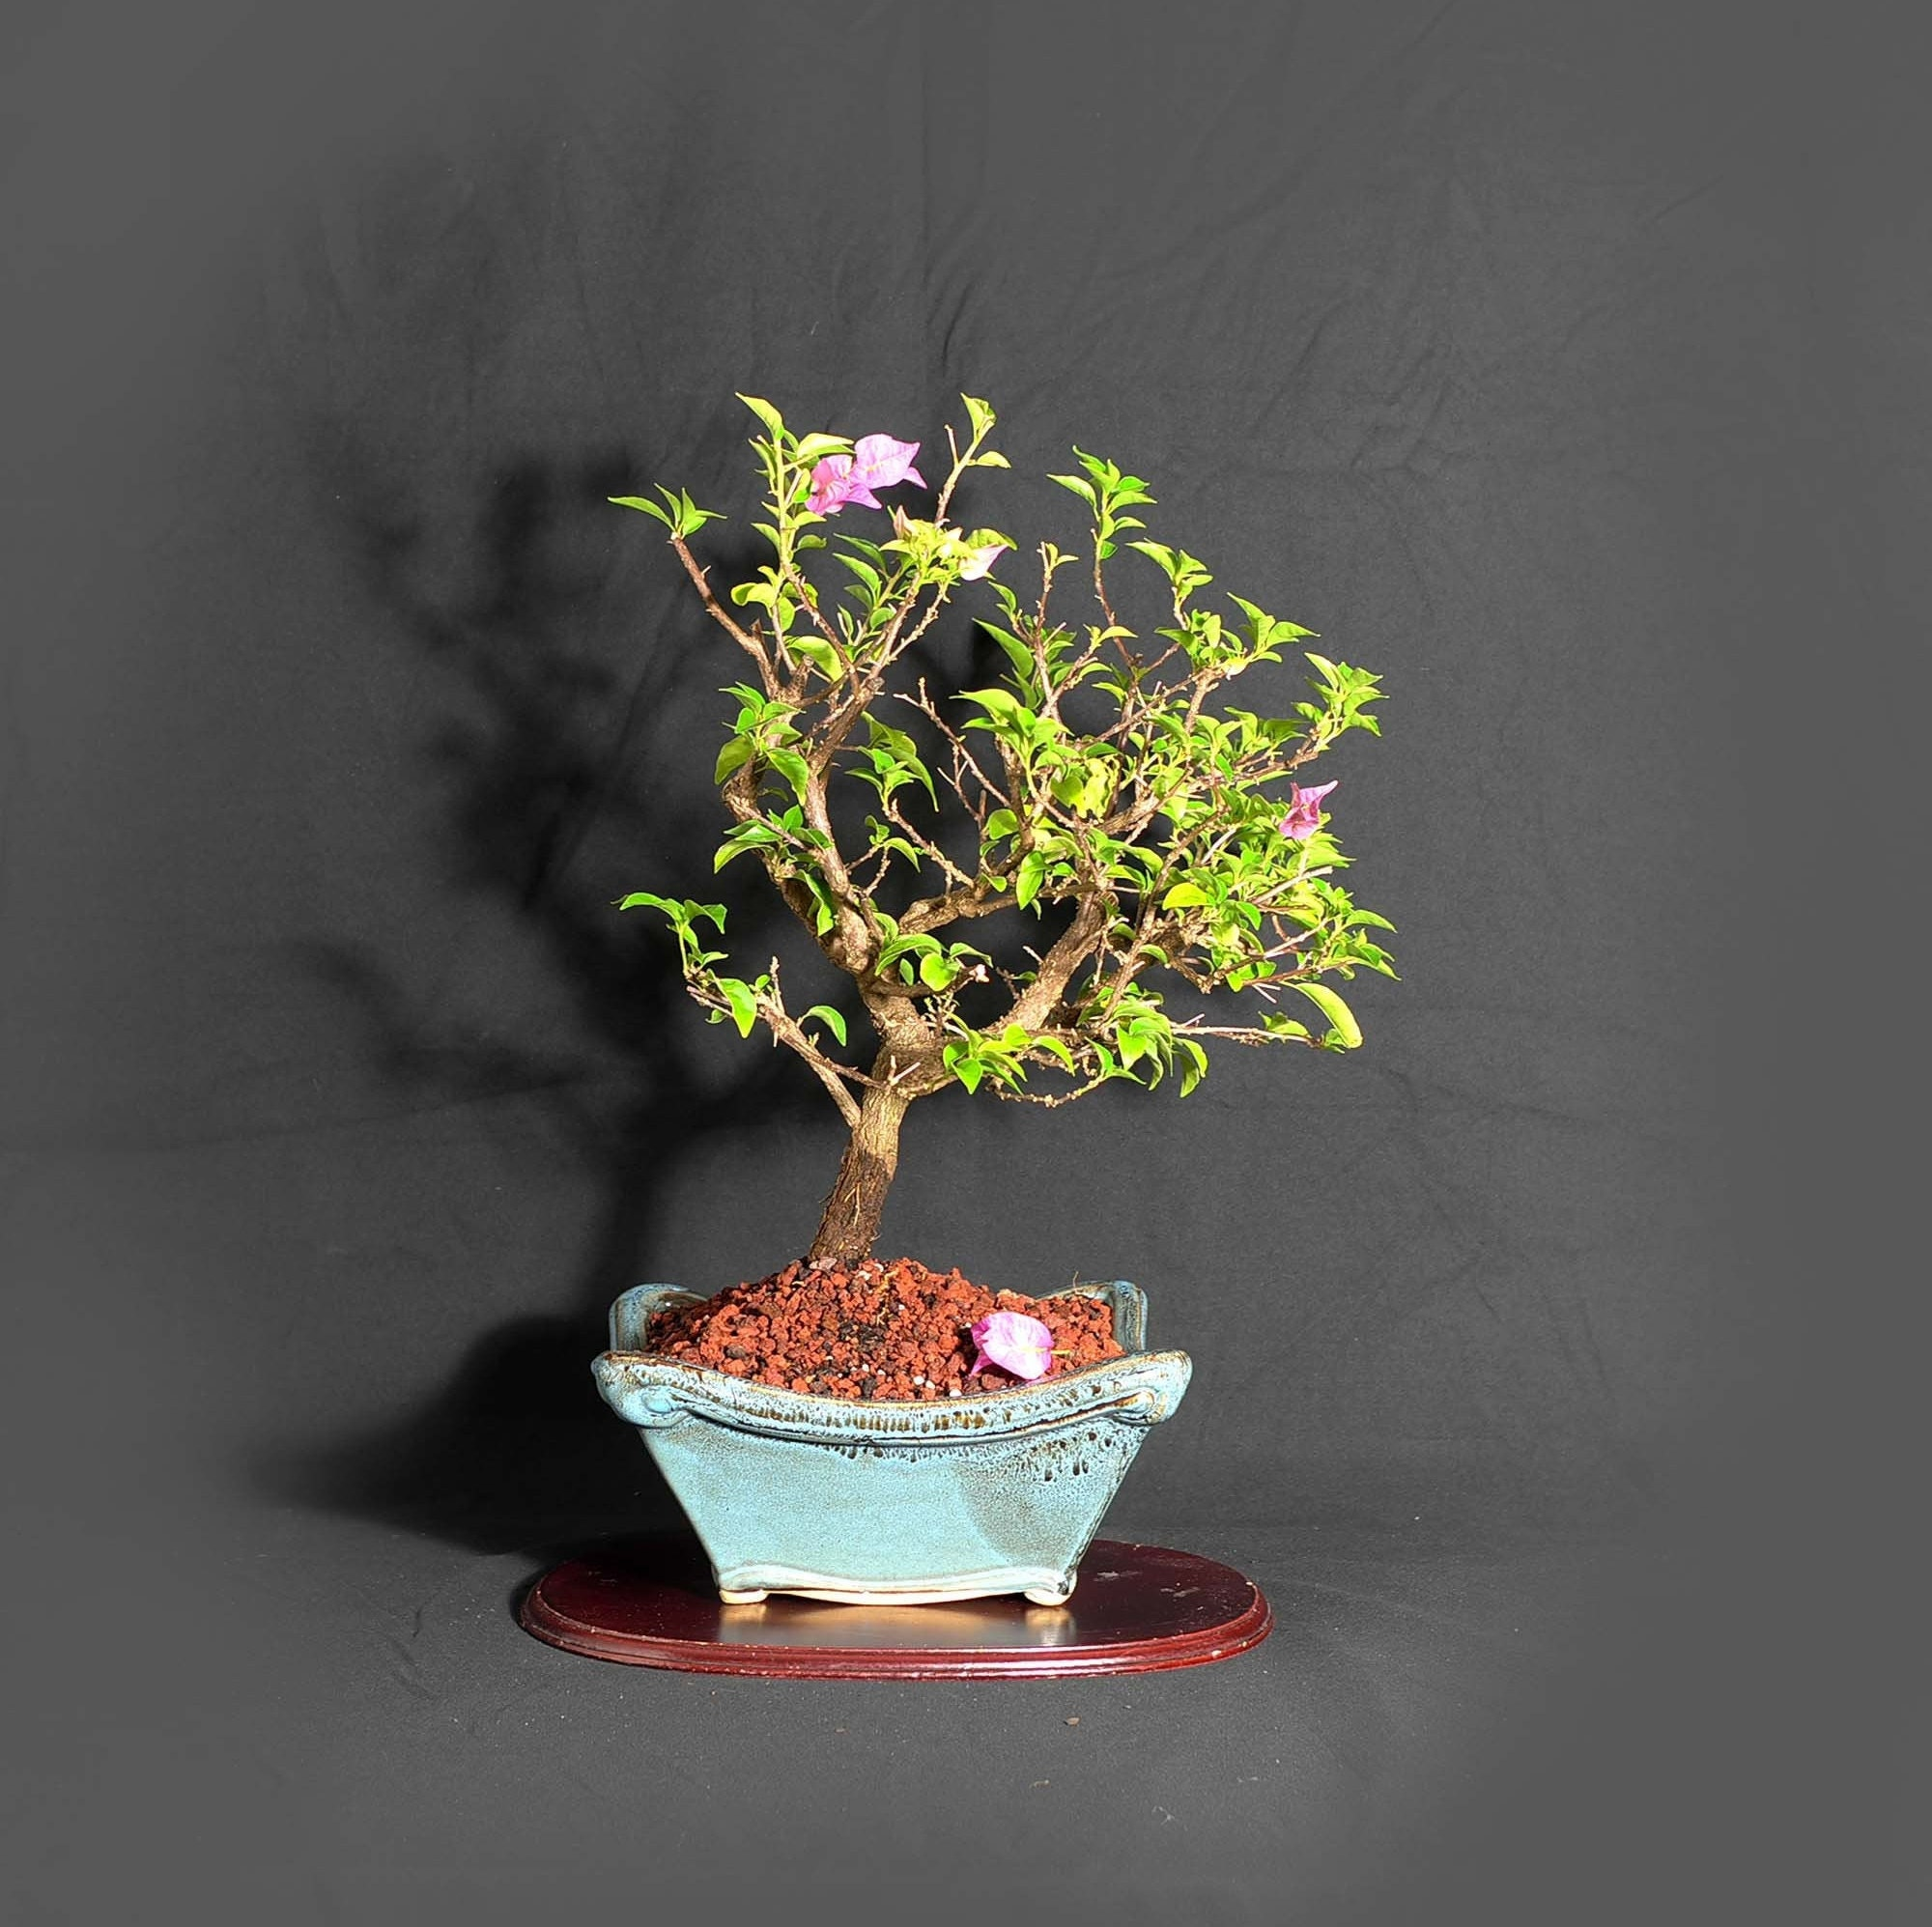 Pixie Bougainvillea Bonsai Tree Nursing Heroes Collection From Livebonsaitree